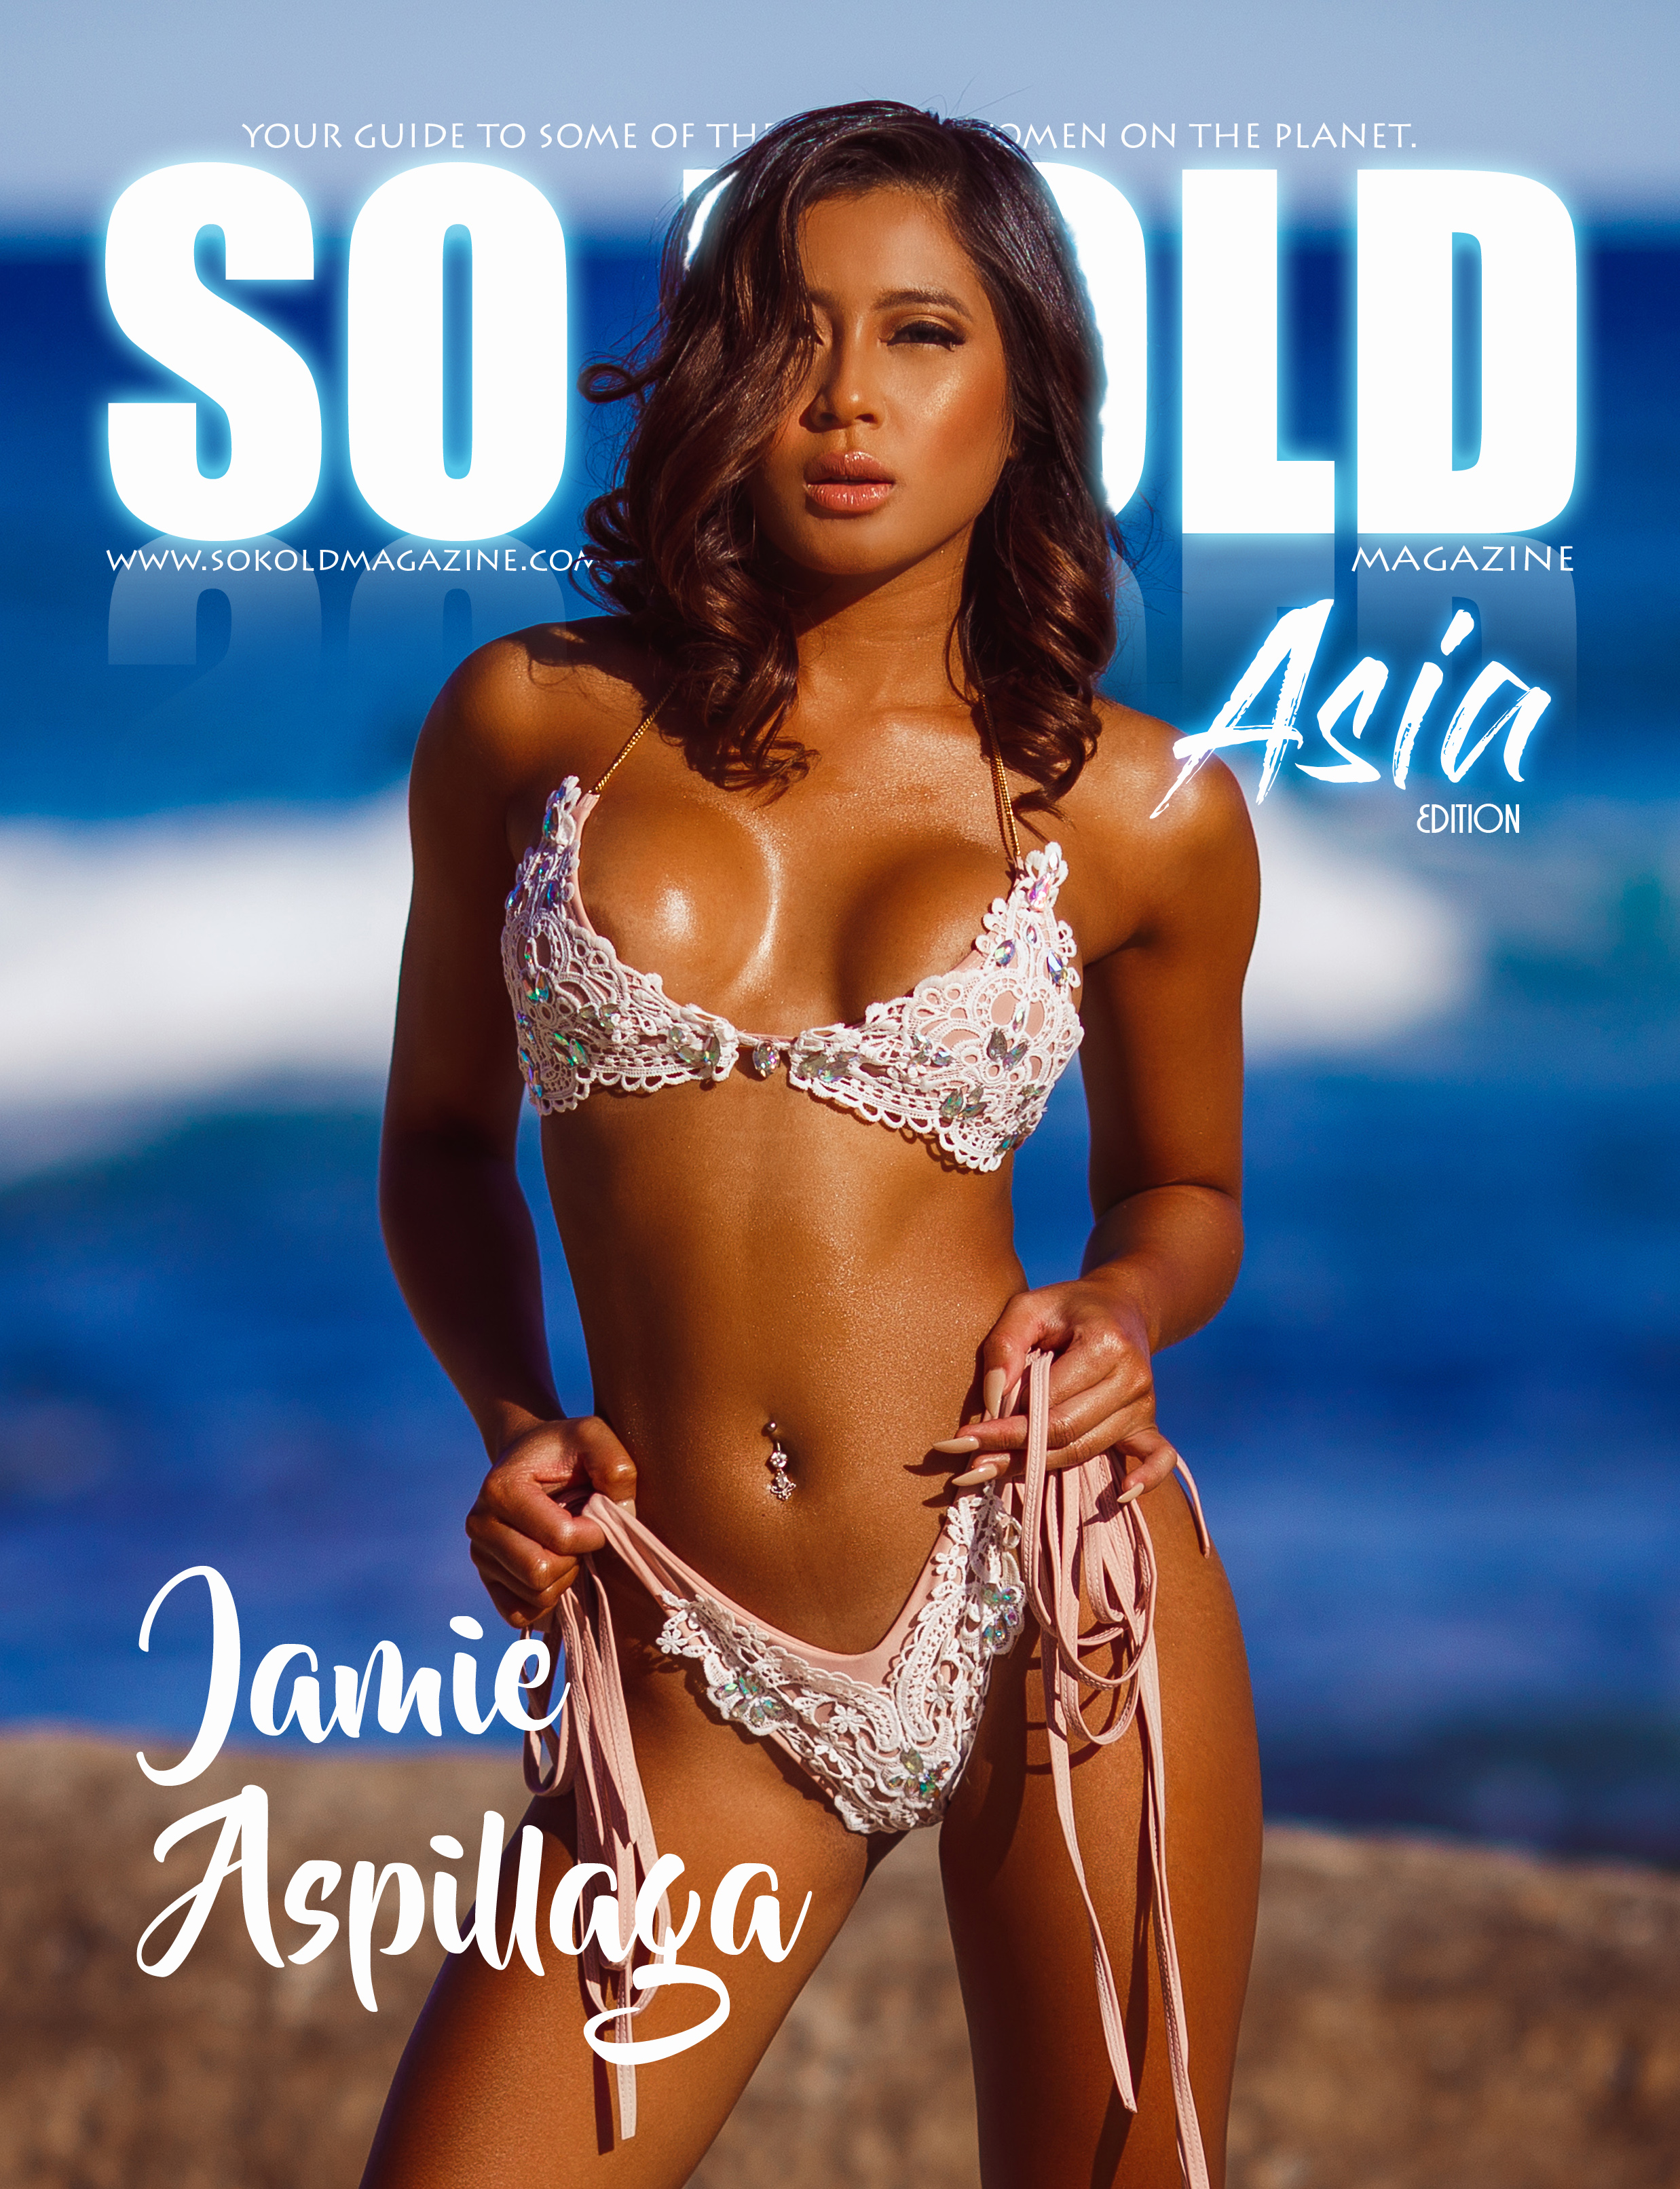 """SO KOLD MAGAZINE - ASIA EDITION - Yes ladies and gentlemen….SO KOLD MAGAZINE invades ASIA…Our first Issue of 2019 bringing out some the Koldest Asian Women out here along with the help of """"Bella Asians Mag….So get ready….2019 Is definitely about to get it Hotter!!"""